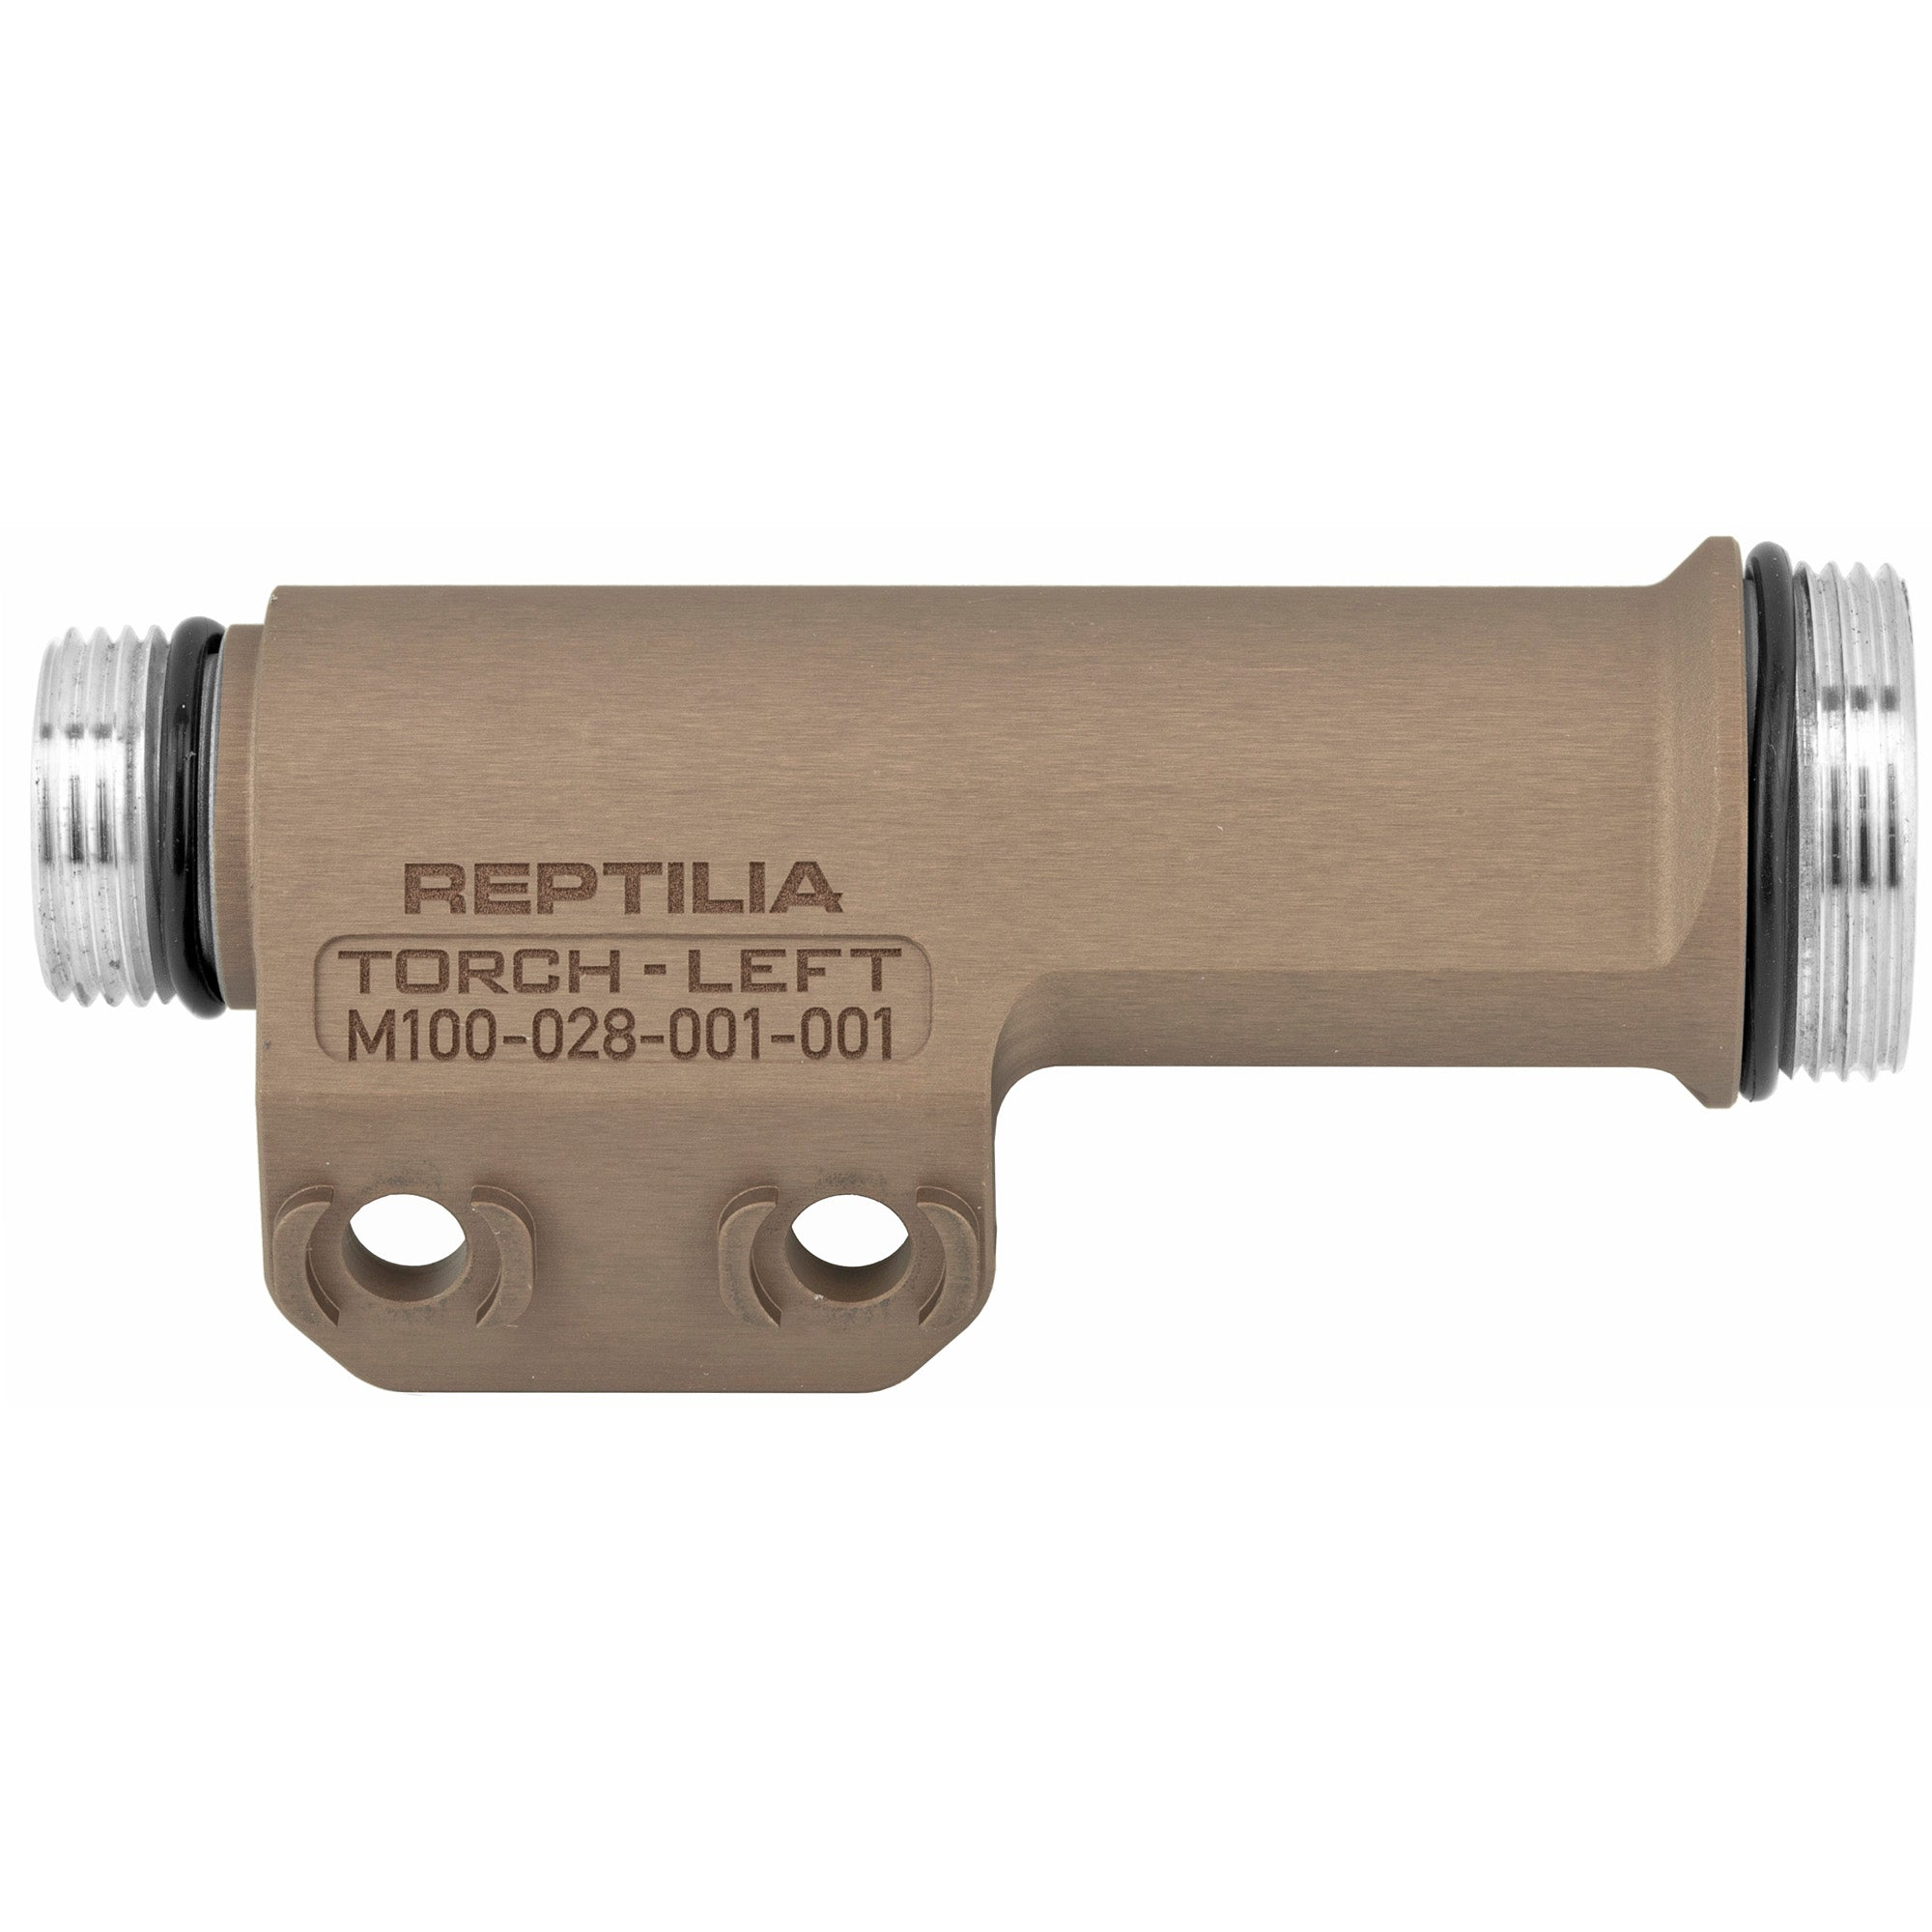 Reptilia TORCH™ - 6V/18650 M-LOK® LIGHT BODY